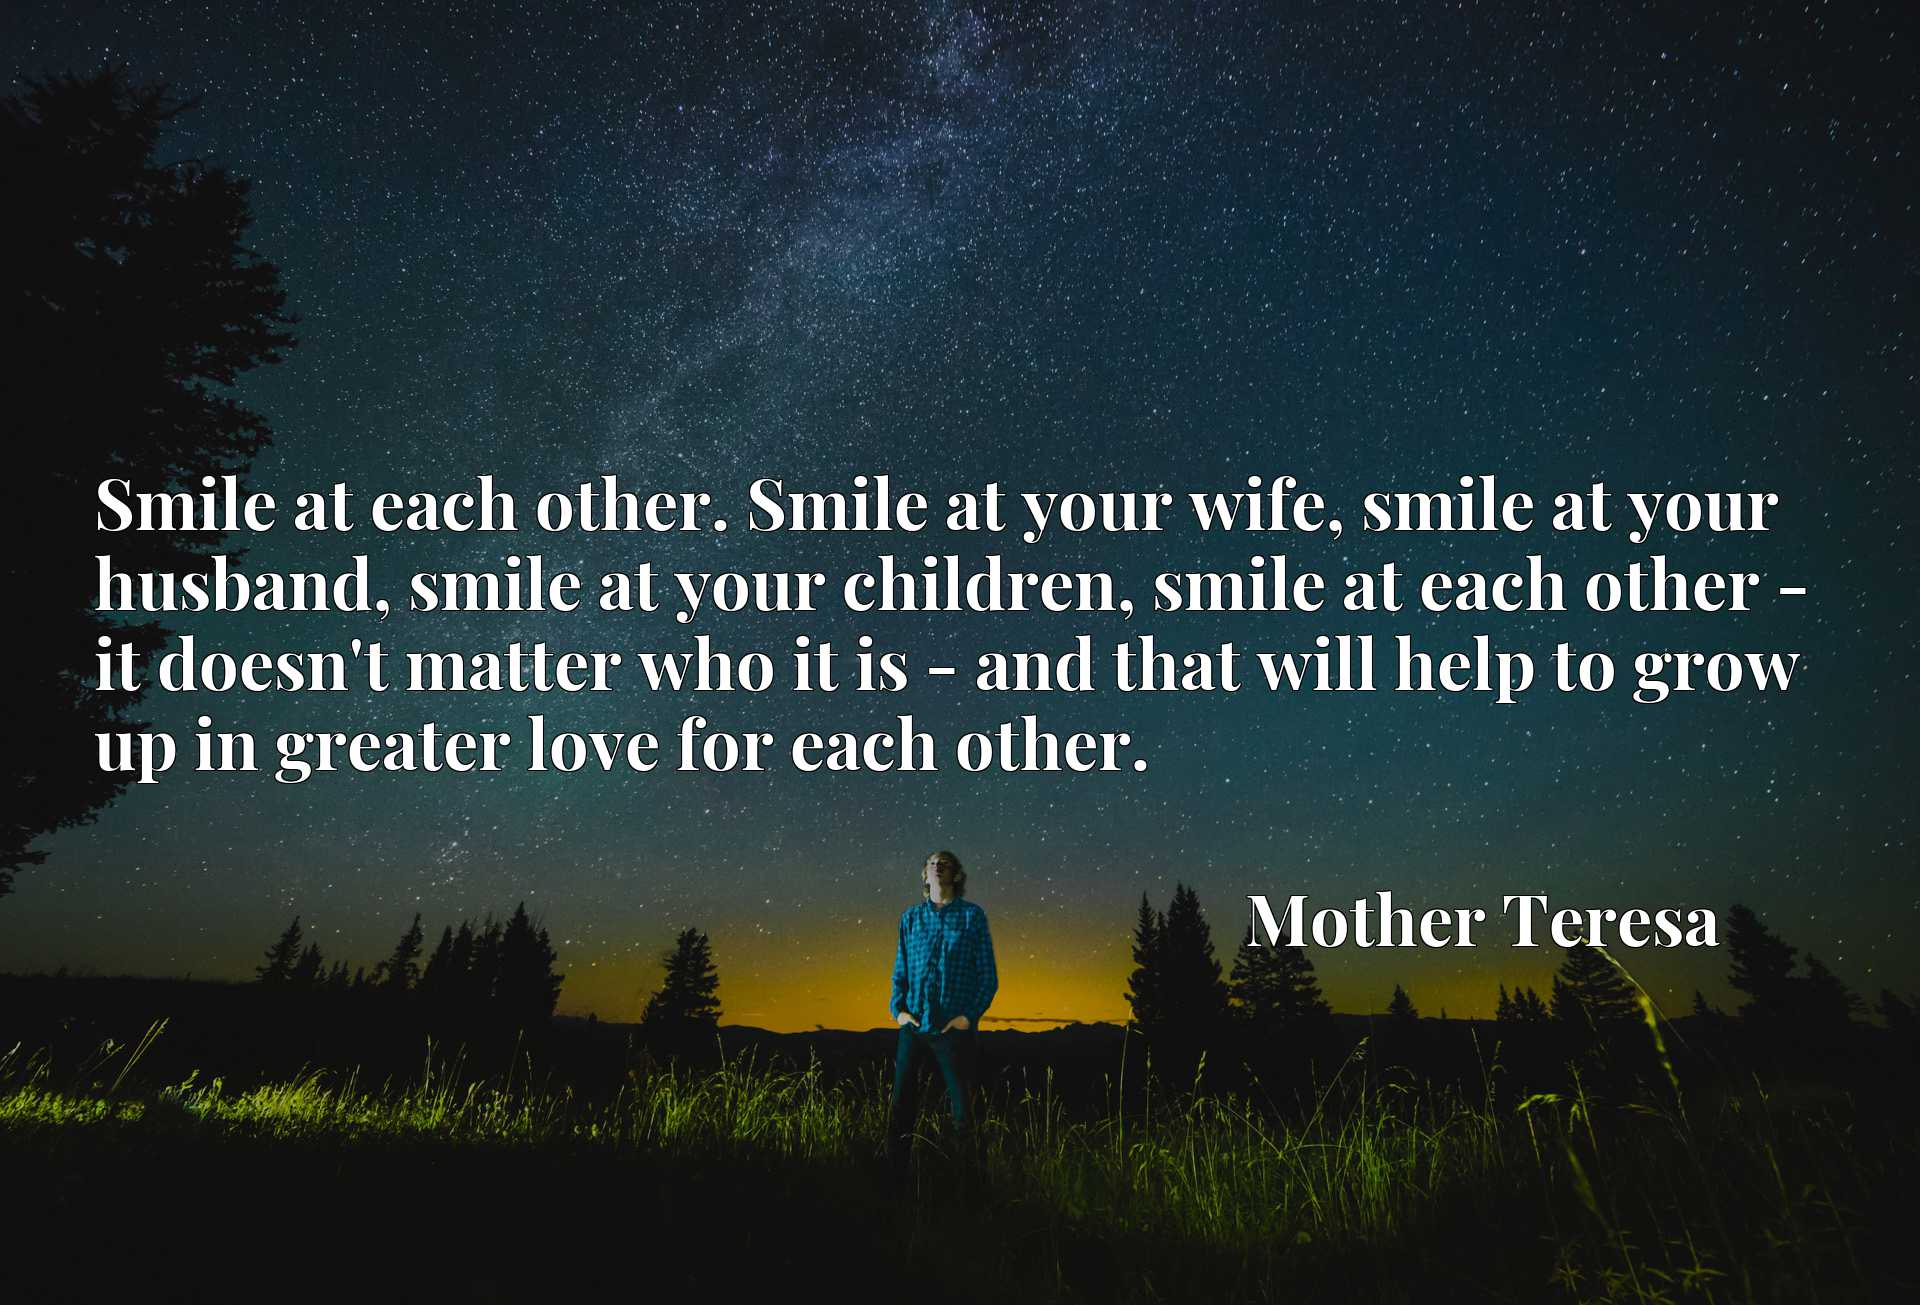 Smile at each other. Smile at your wife, smile at your husband, smile at your children, smile at each other - it doesn't matter who it is - and that will help to grow up in greater love for each other.